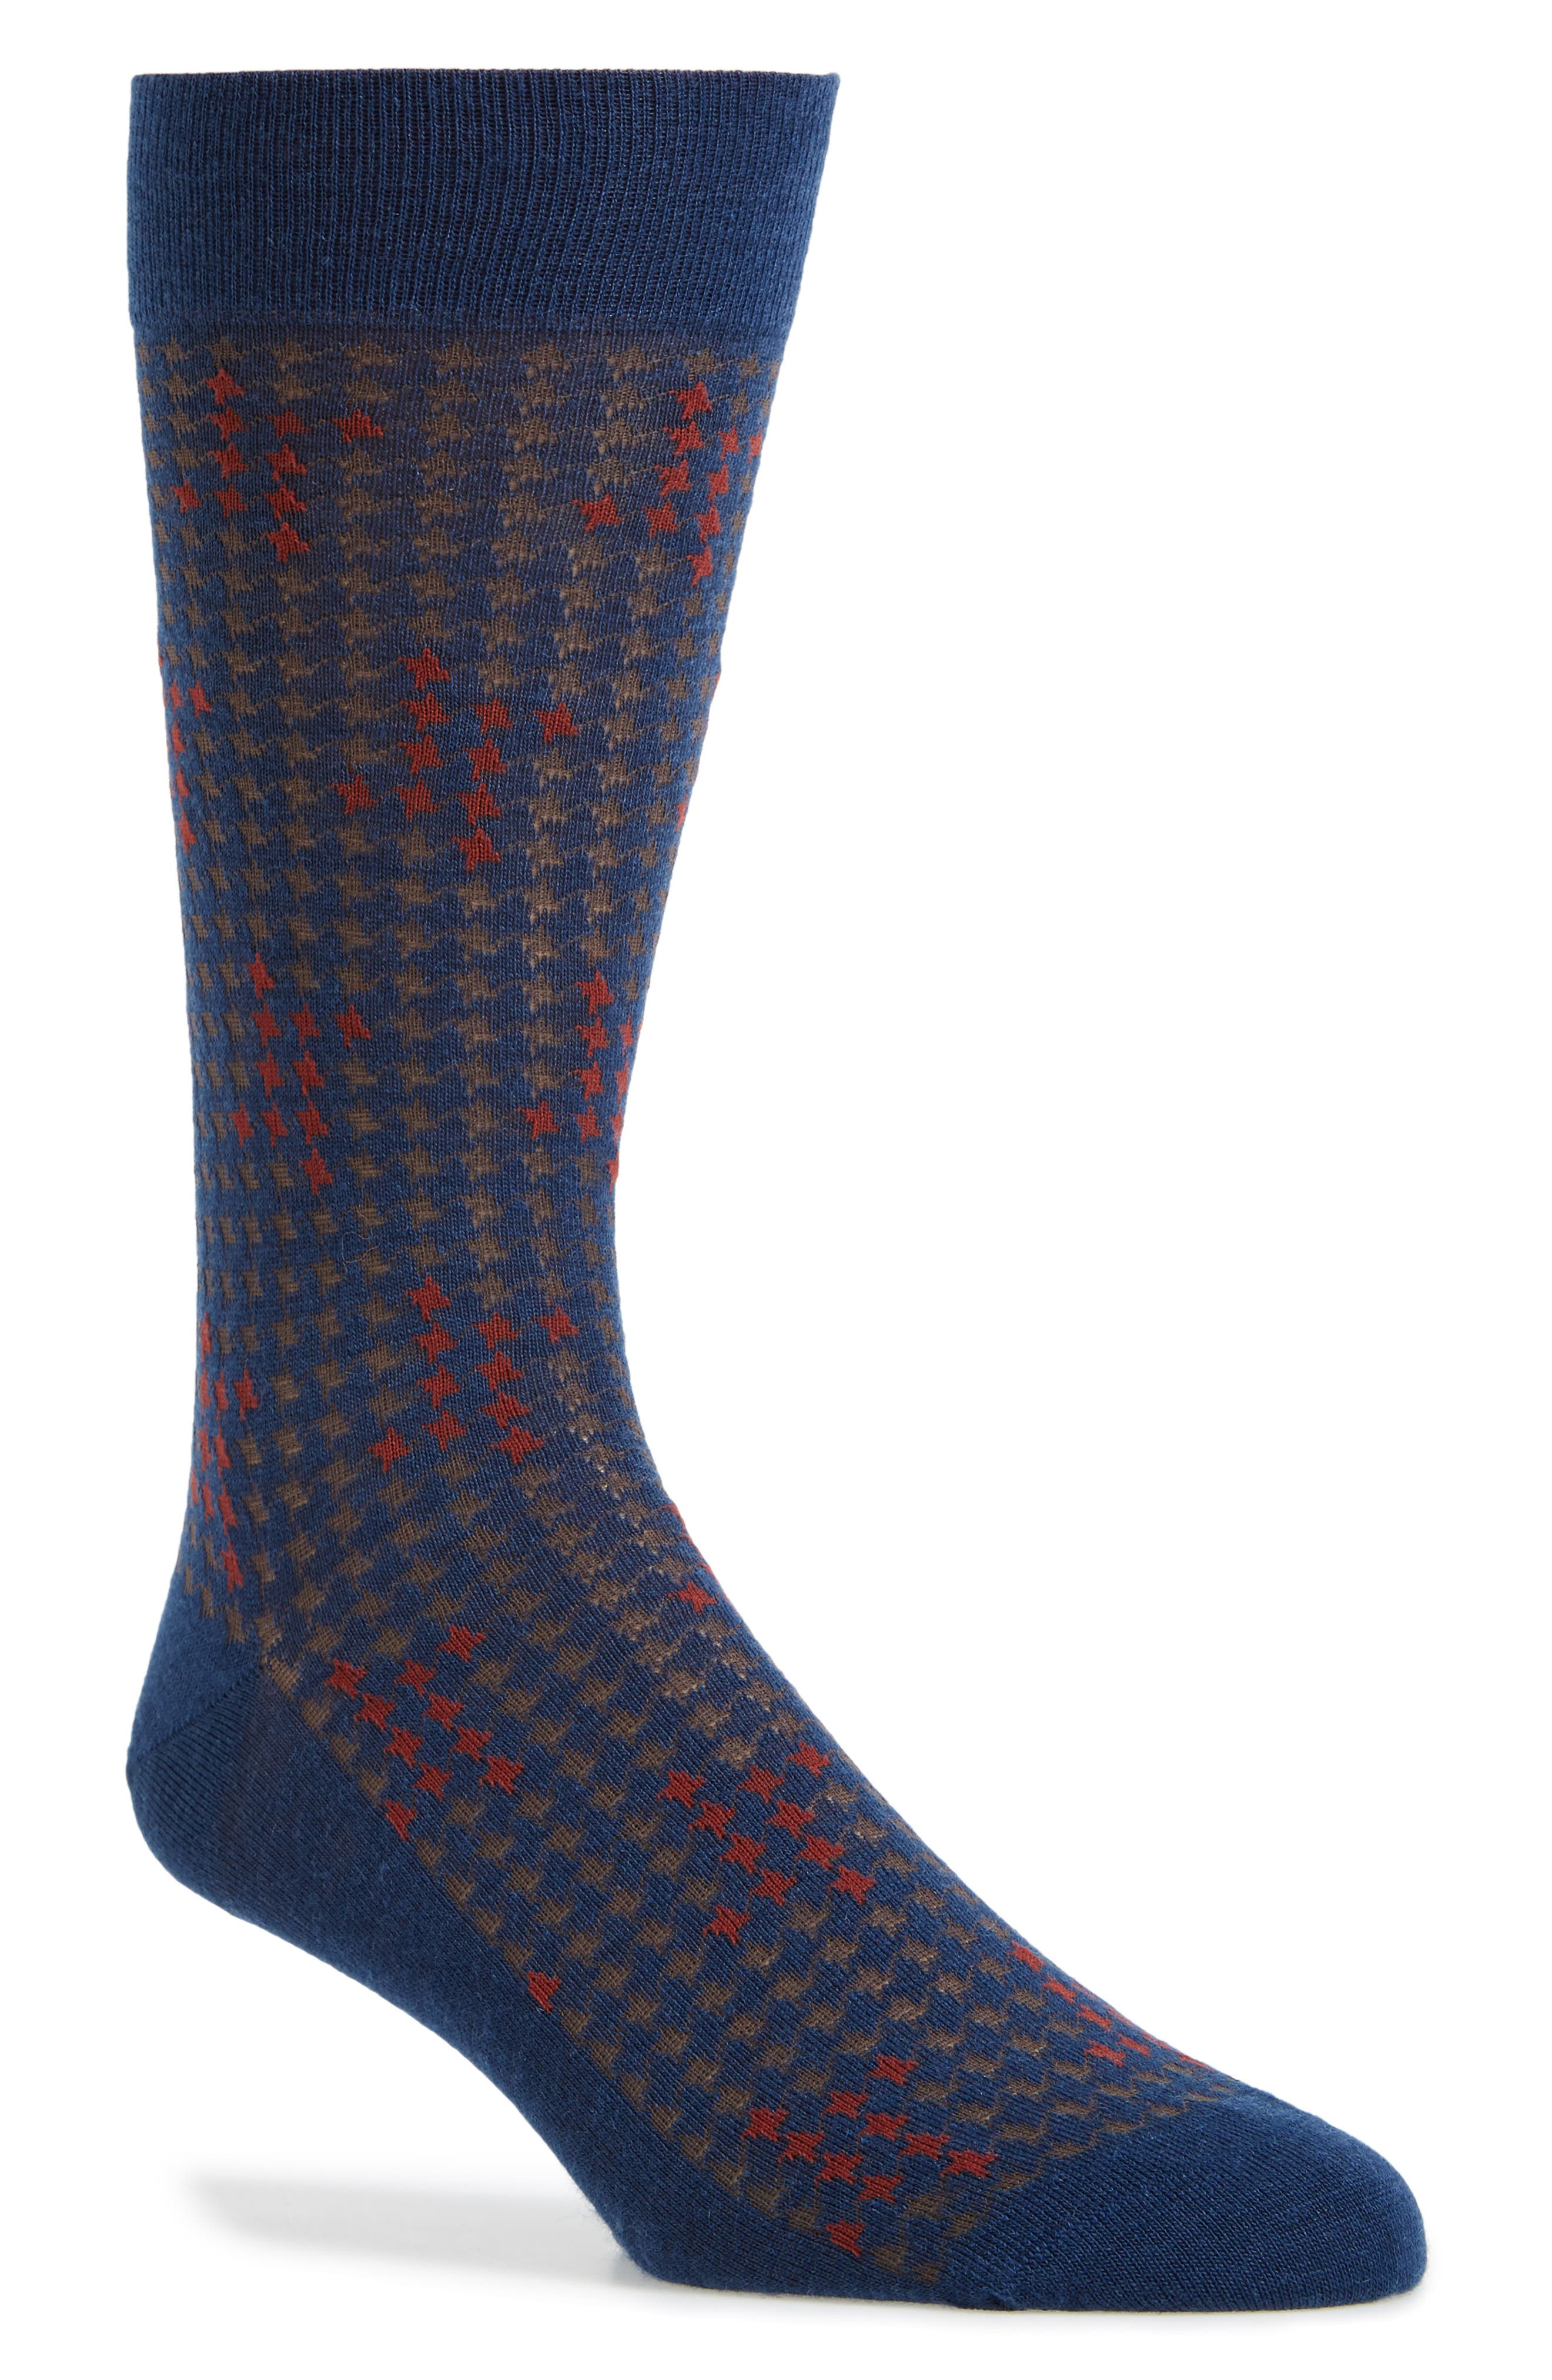 Houndstooth Socks,                         Main,                         color, 401